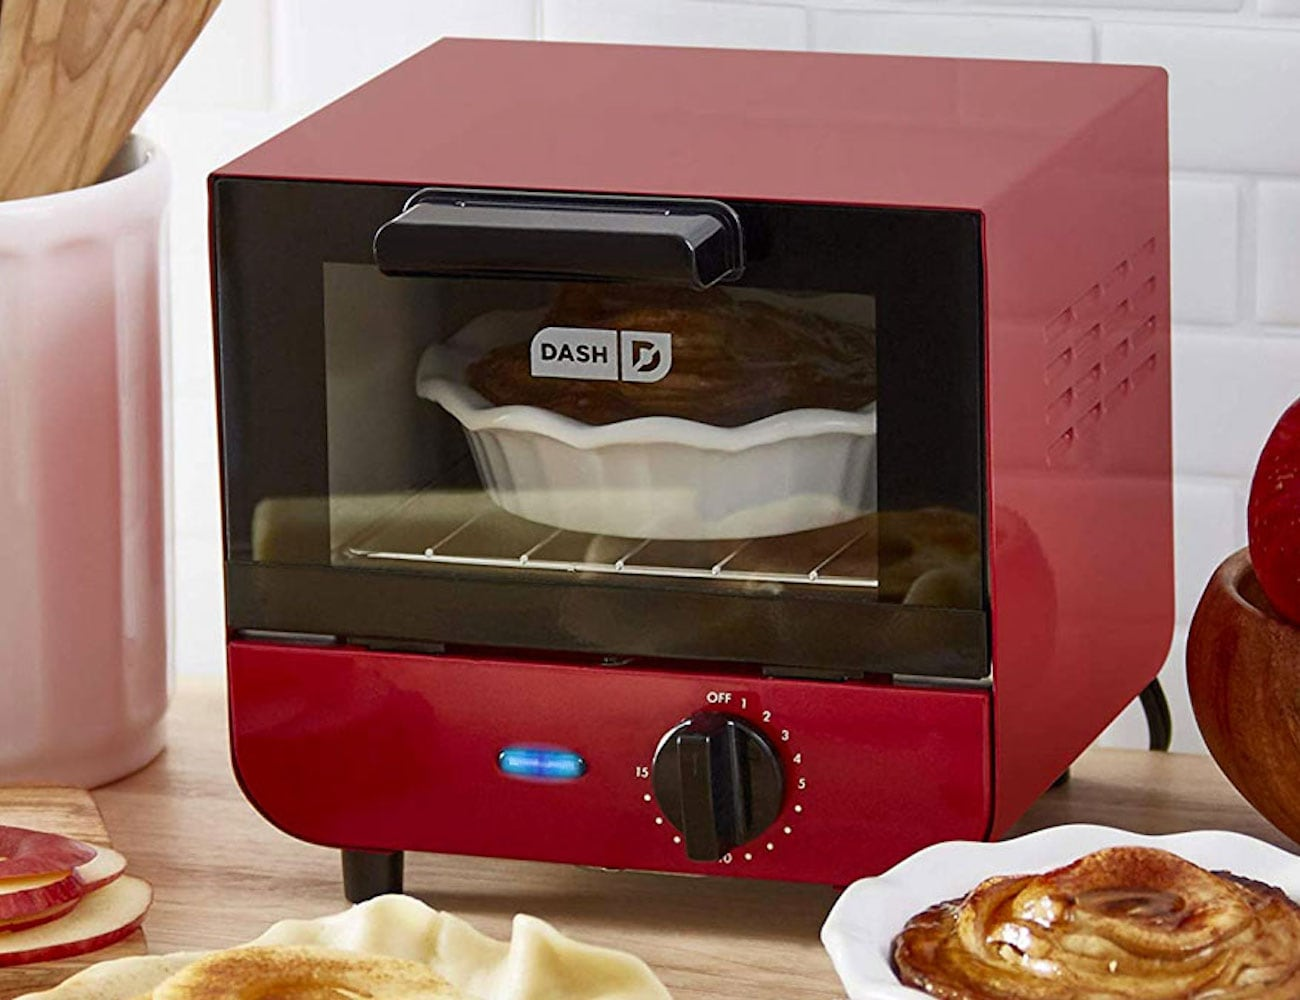 Dash Mini Toaster Oven is 550 watts of countertop cooking power